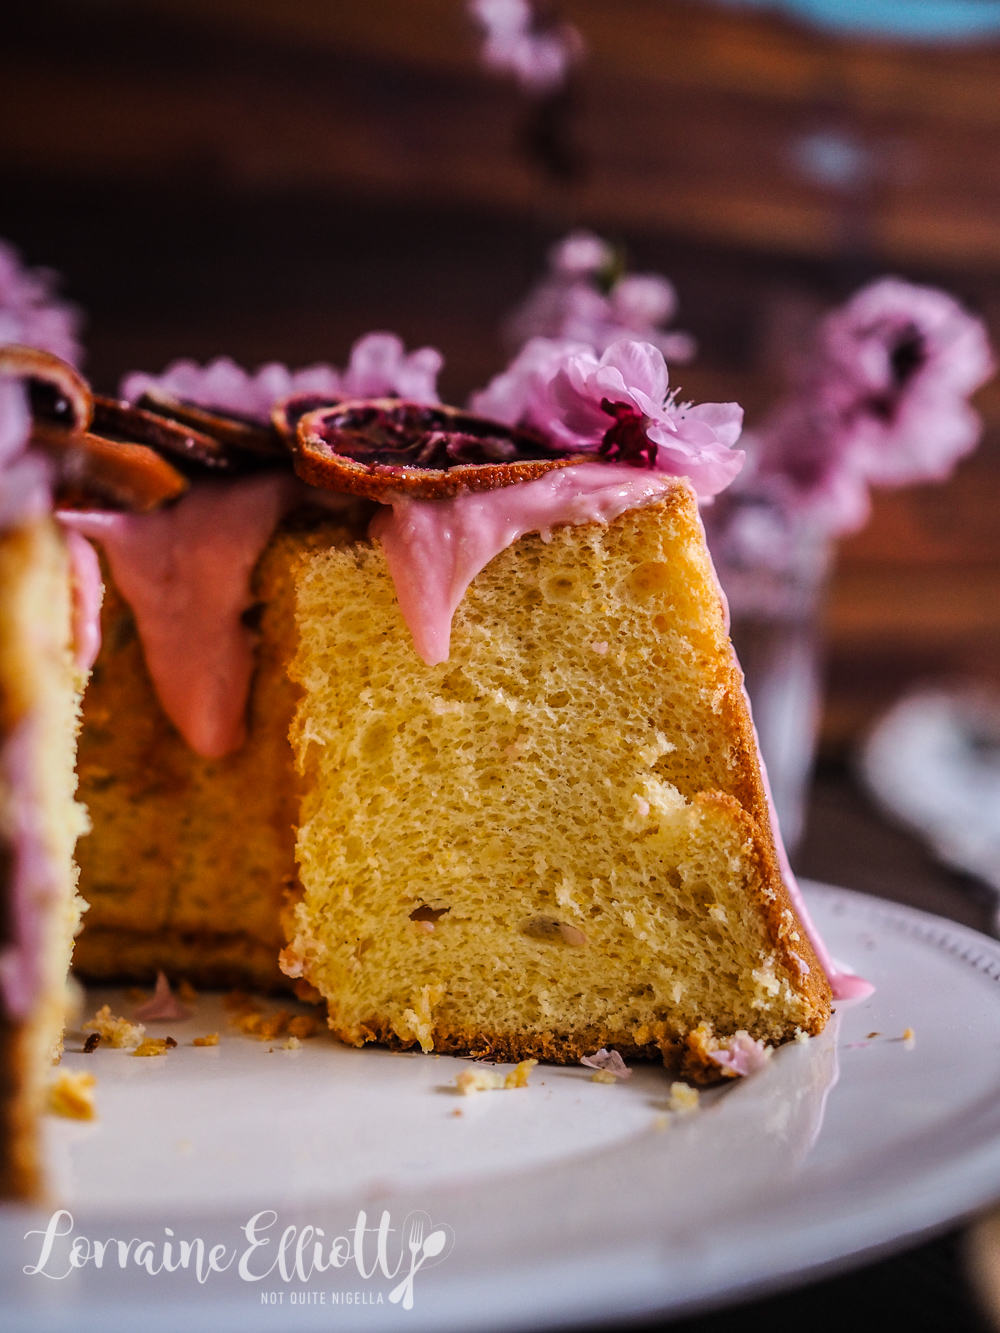 Blood Orange Chiffon Cake recipe